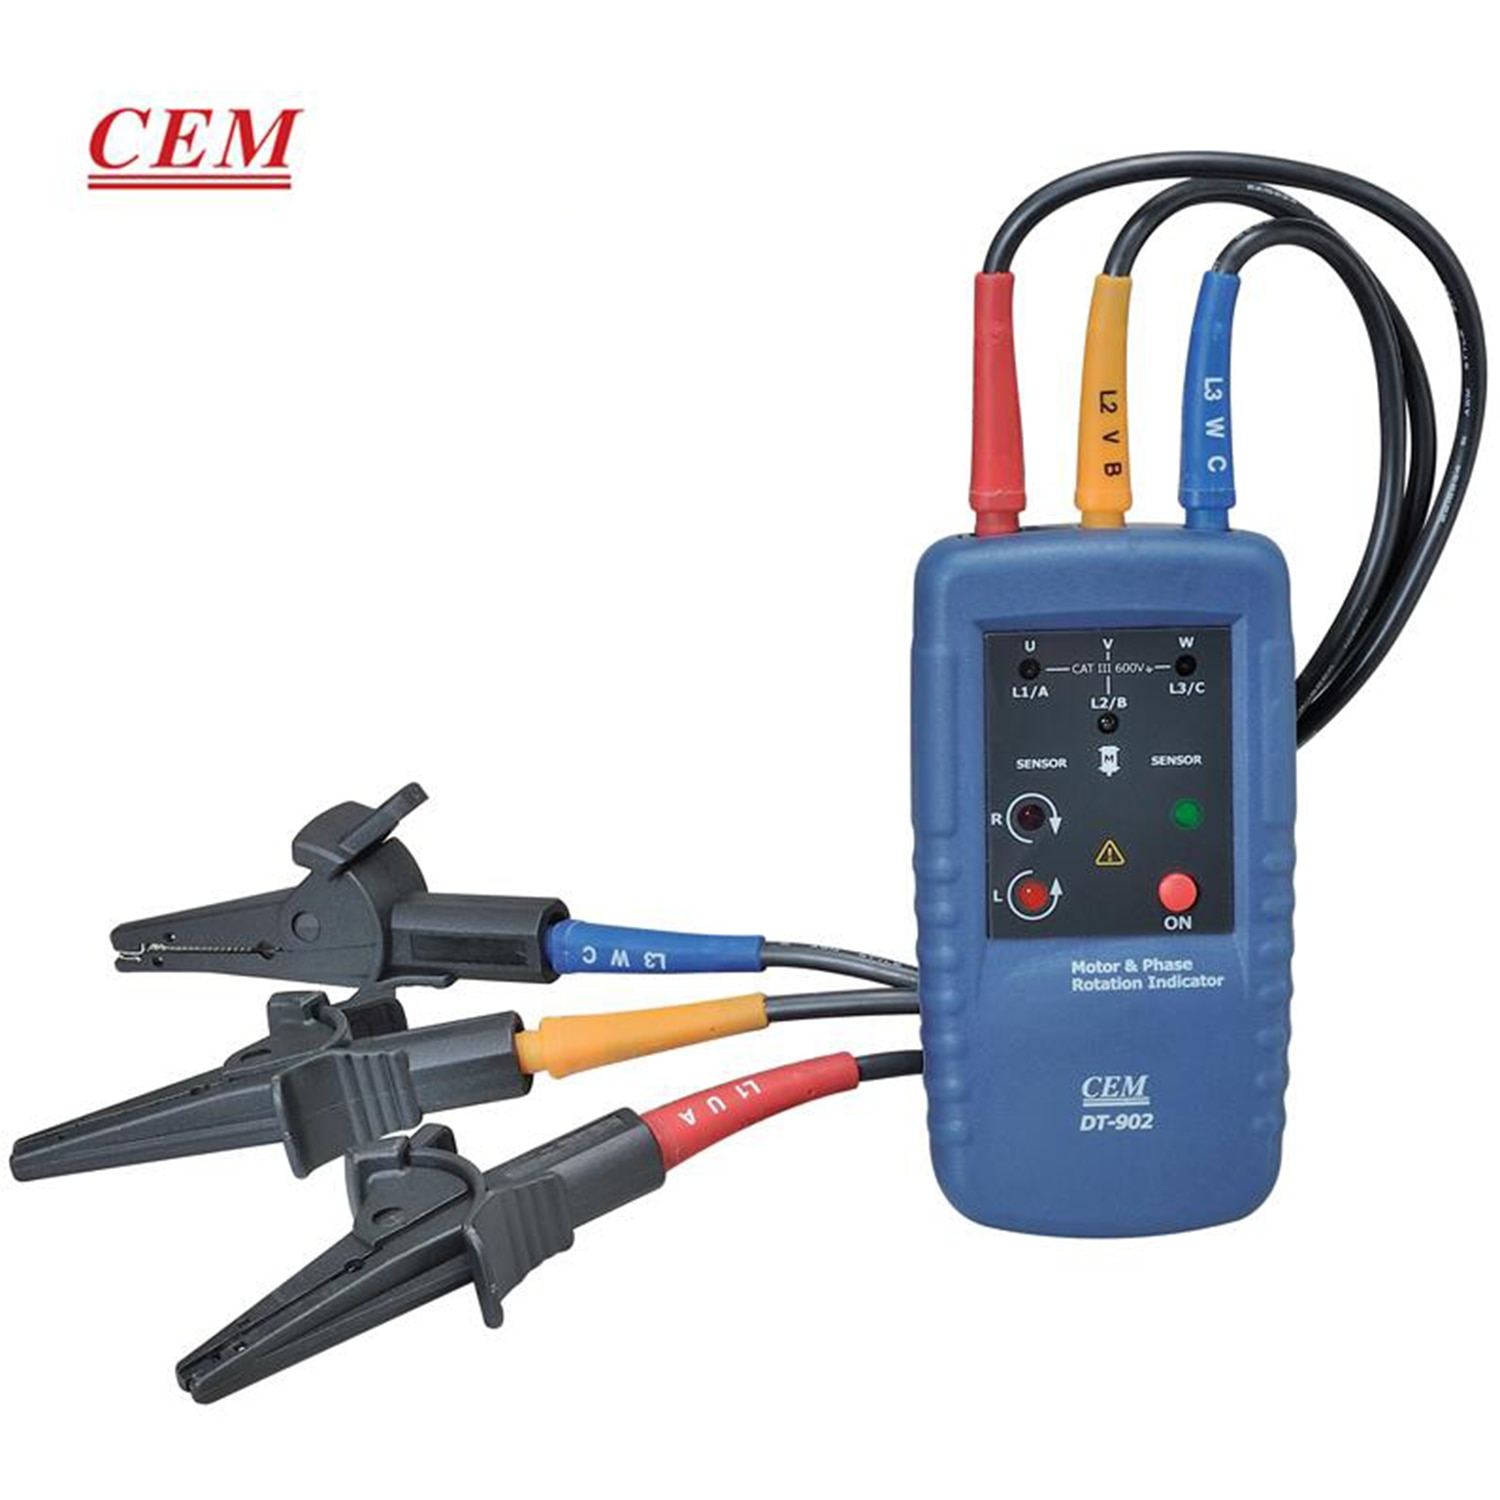 CEM DT-902 Phase Sequence Meter Motor Magnetic Field Indicator  Digital Phase Meter Voltage Frequency Measurement Hand Held.